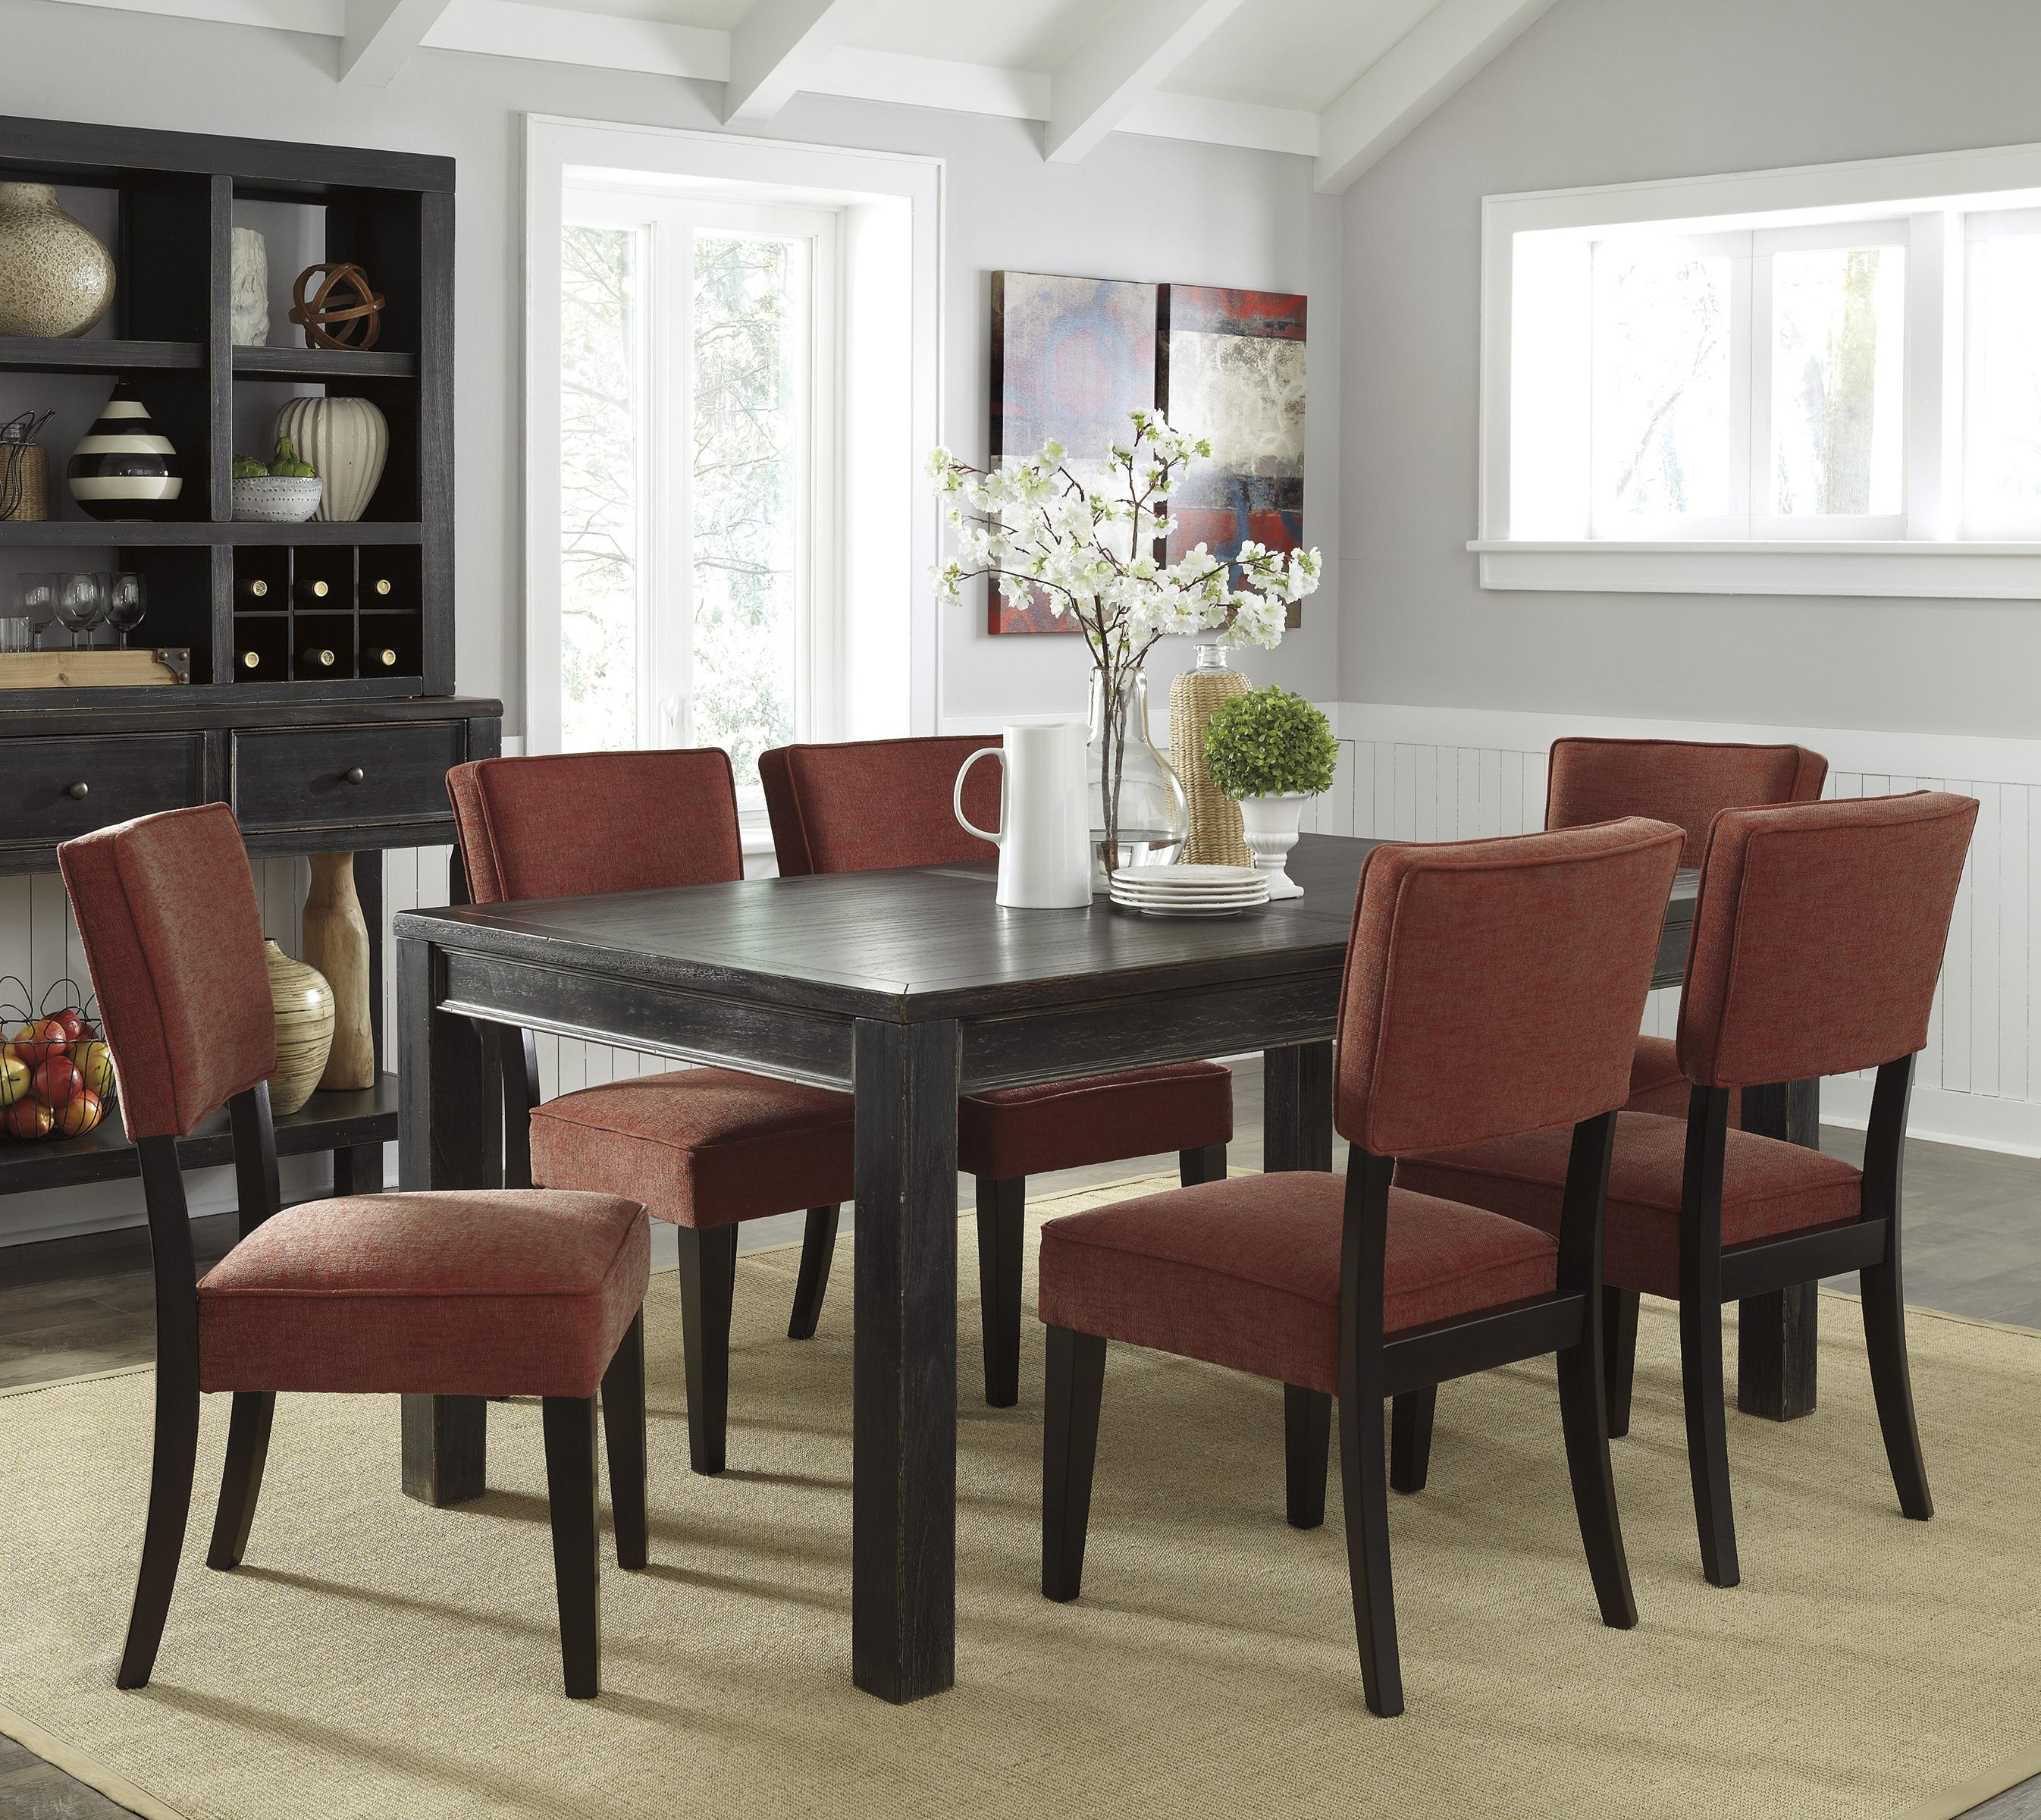 Signature Design by Ashley Gavelston 7-Piece Rectangular Table Dining Set - Item Number: D532-25+6x04